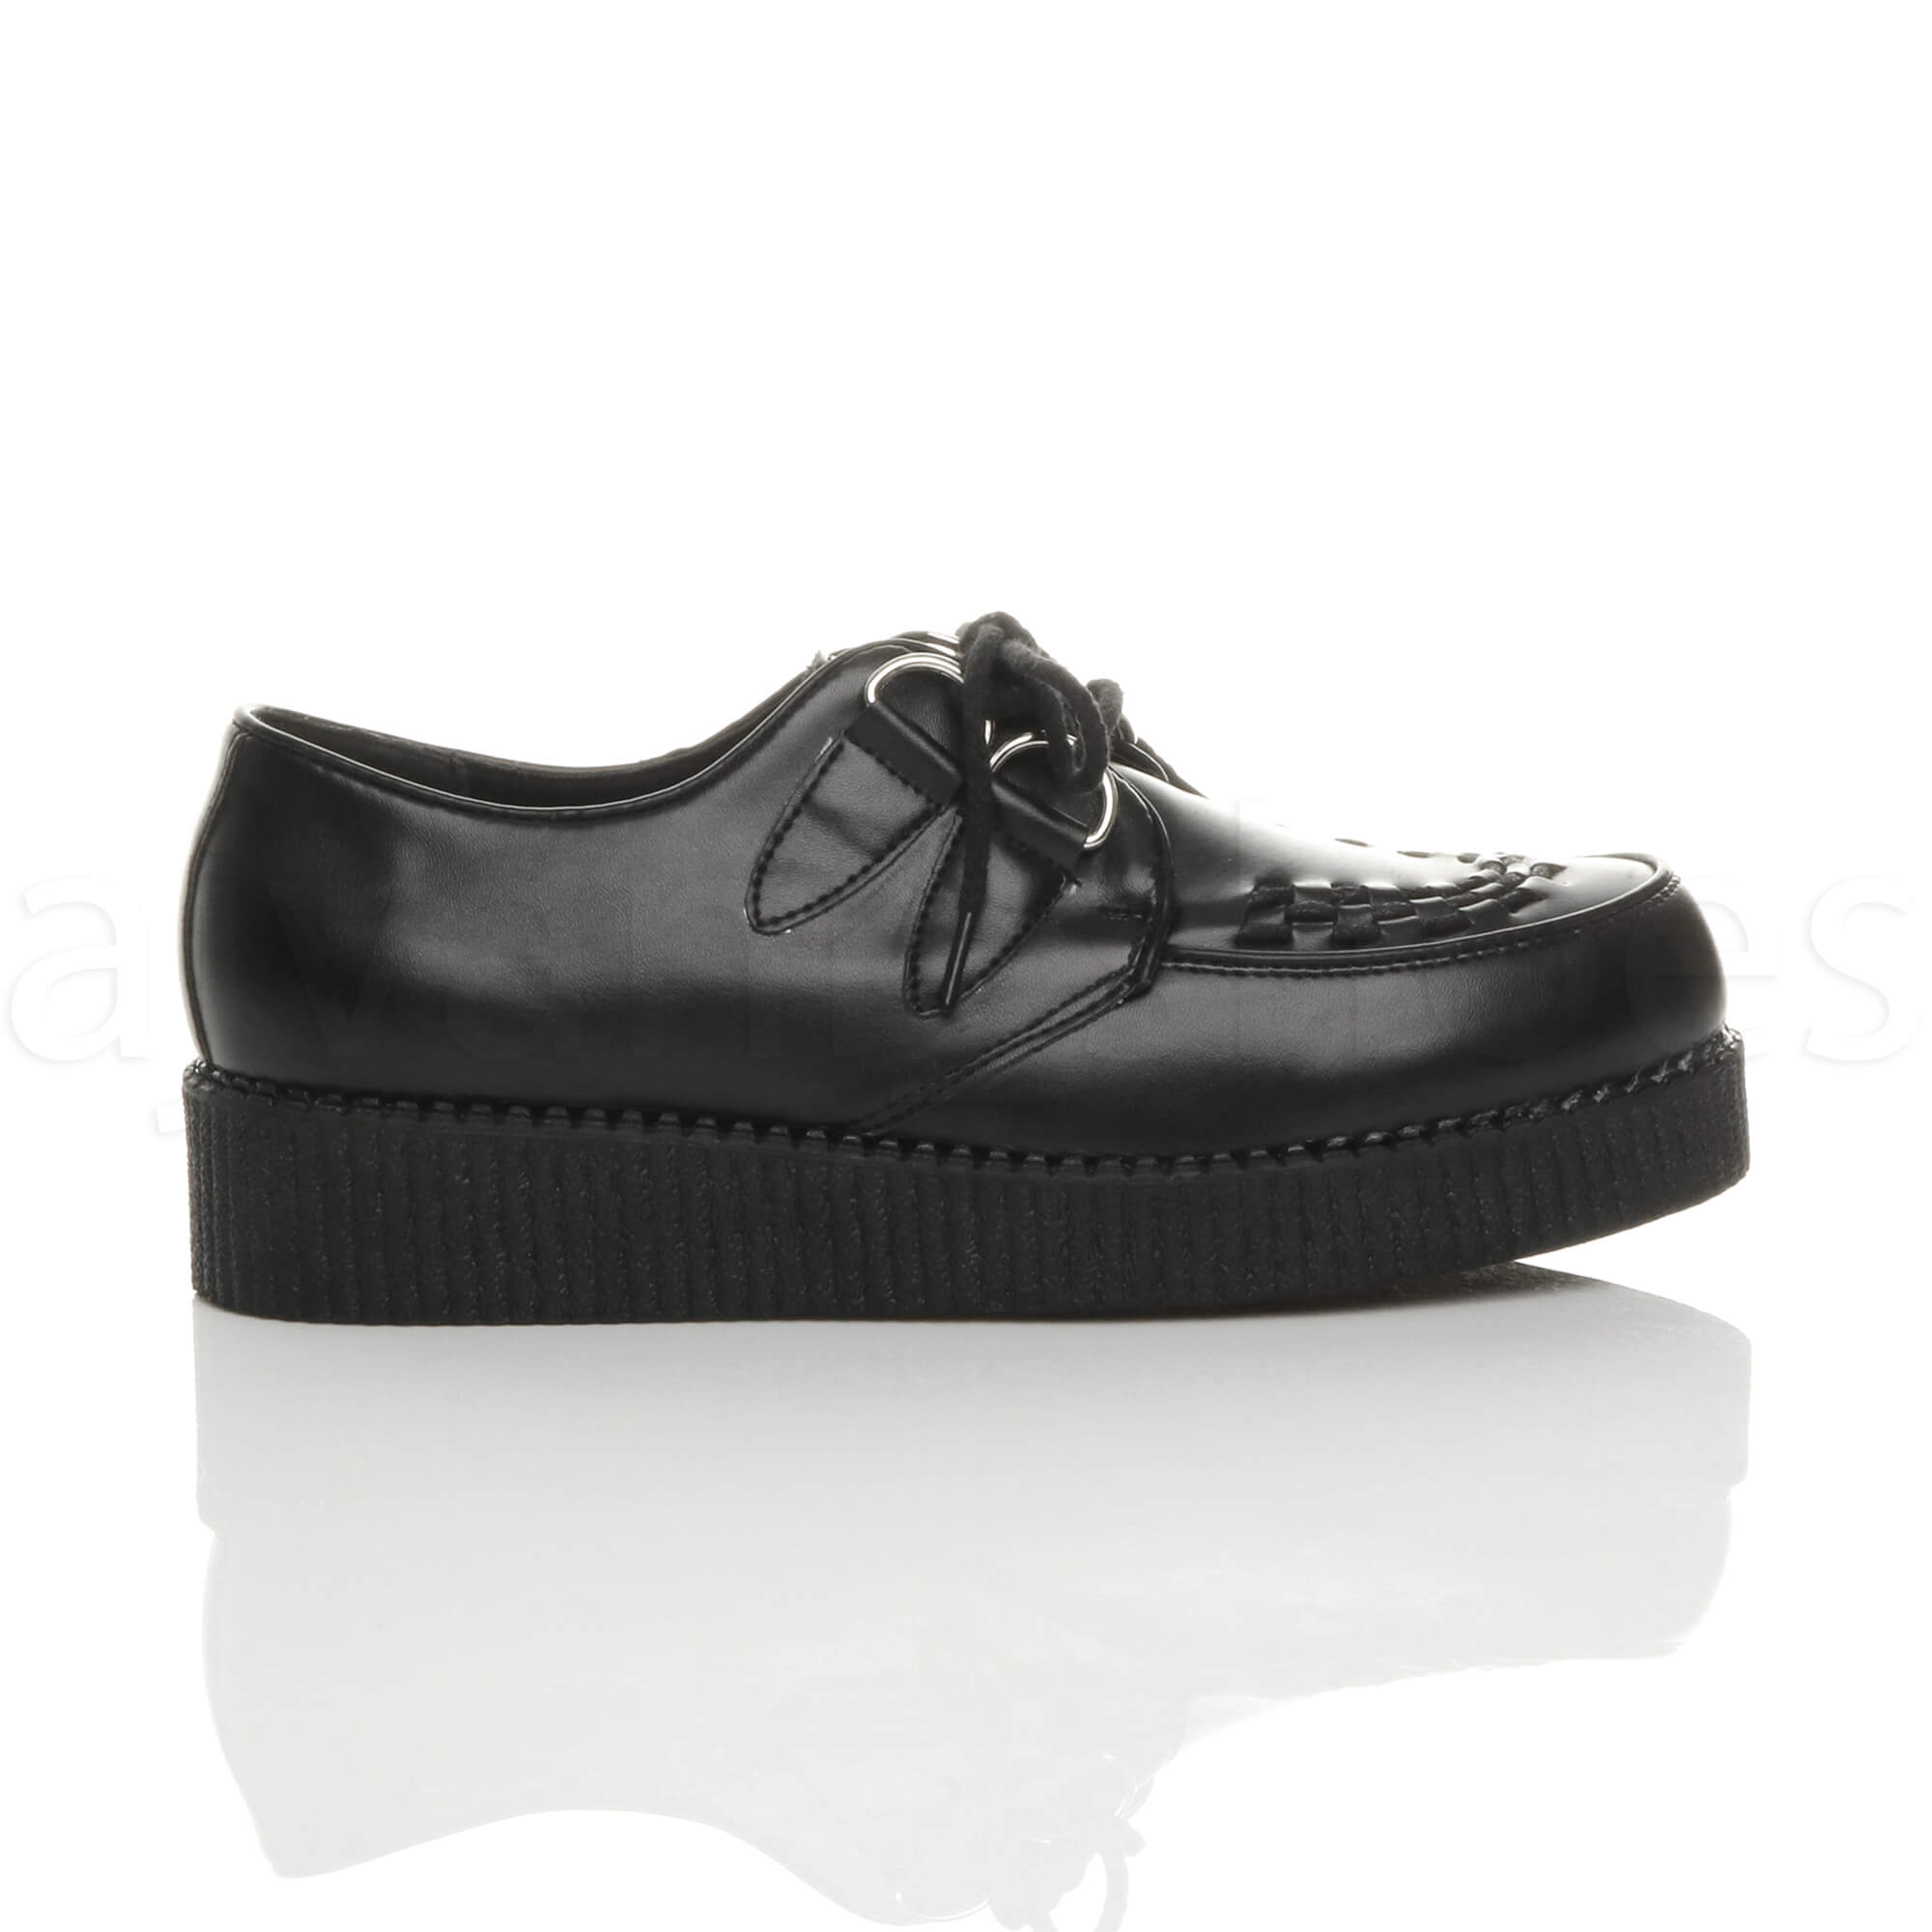 MENS-PLATFORM-WEDGE-LACE-UP-GOTH-PUNK-BROTHEL-CREEPERS-BEETLE-CRUSHERS-SHOES thumbnail 3